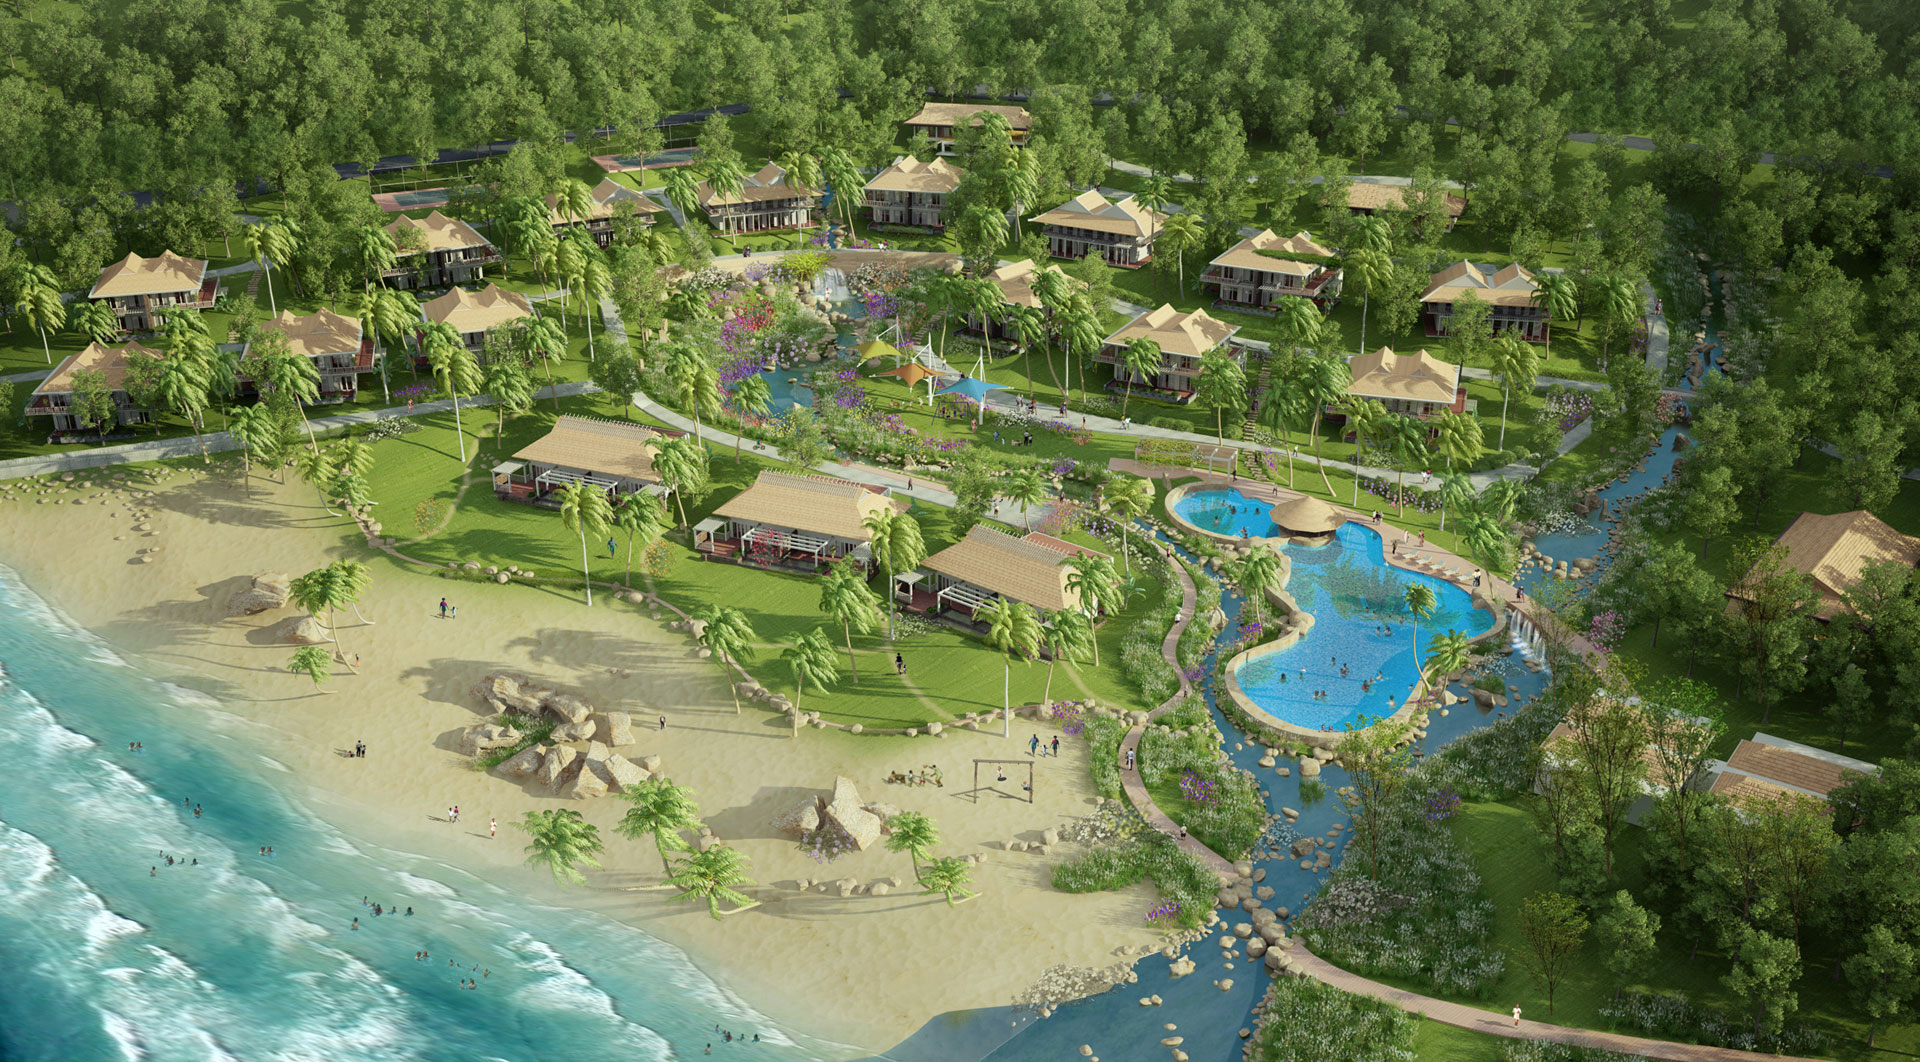 The project has steep terrains, and this creates convenient conditions for the construction of the resort, spa and villas